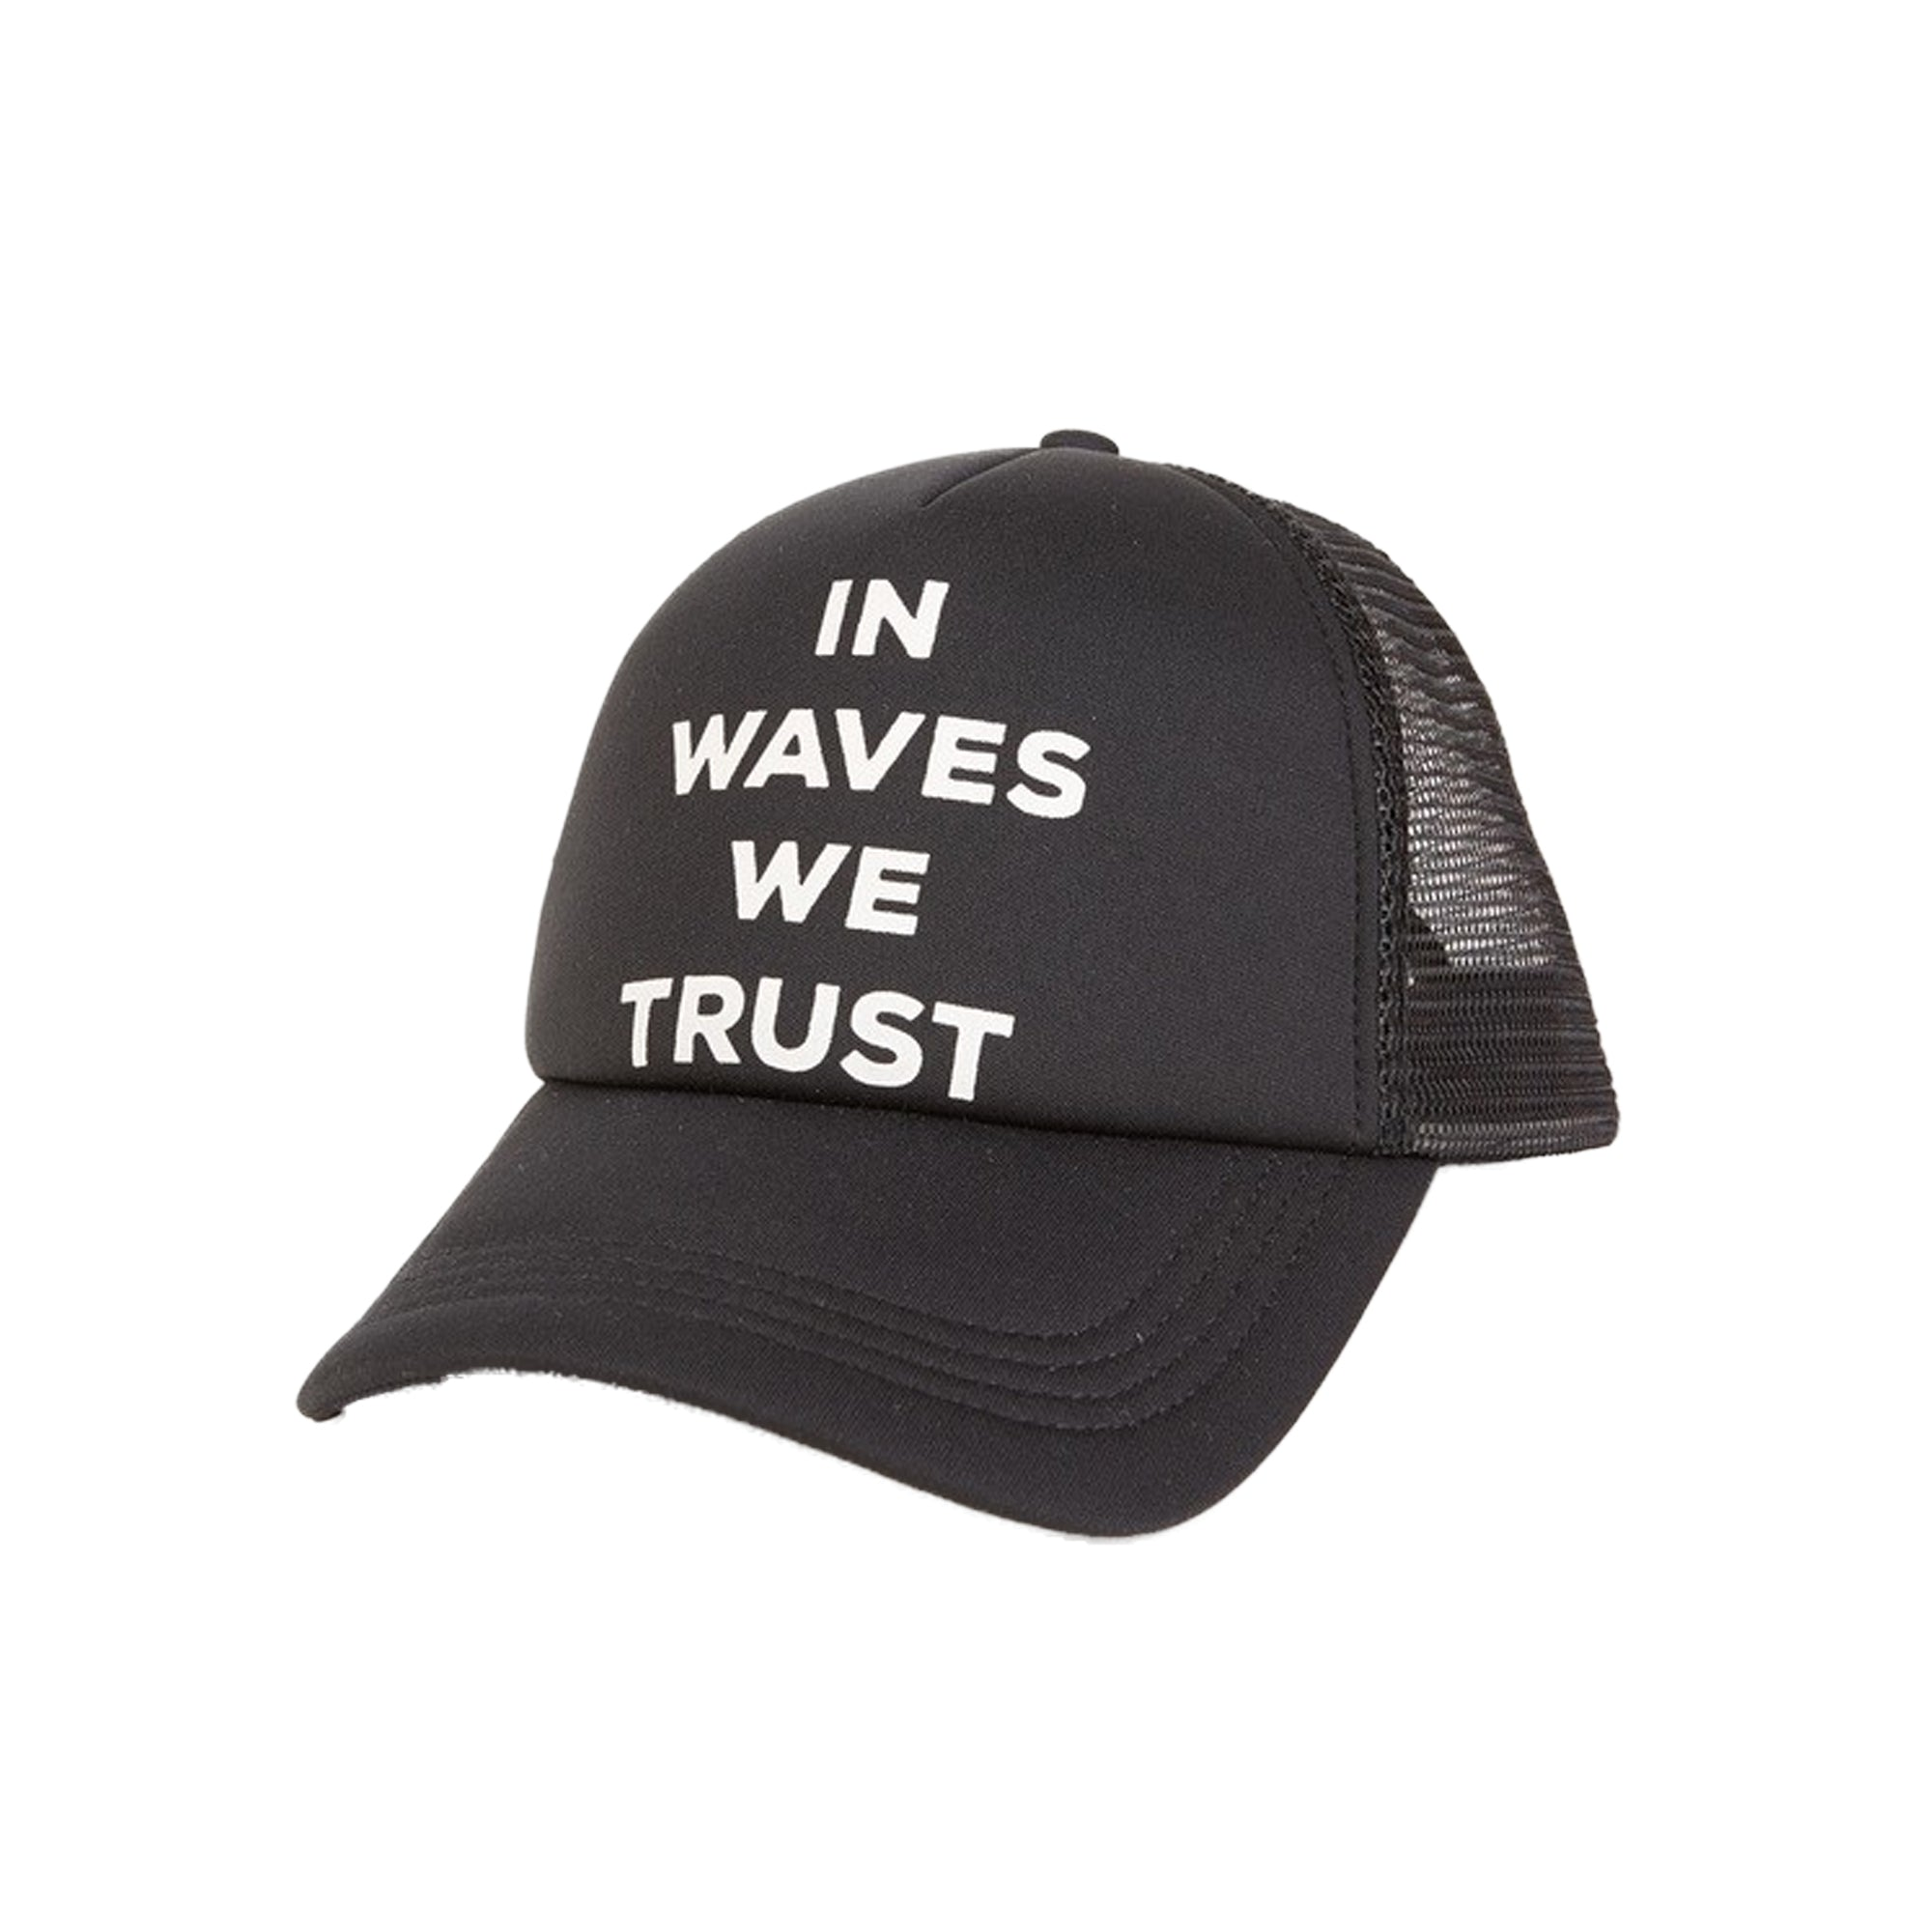 Billabong Across Waves Women's Trucker Hat